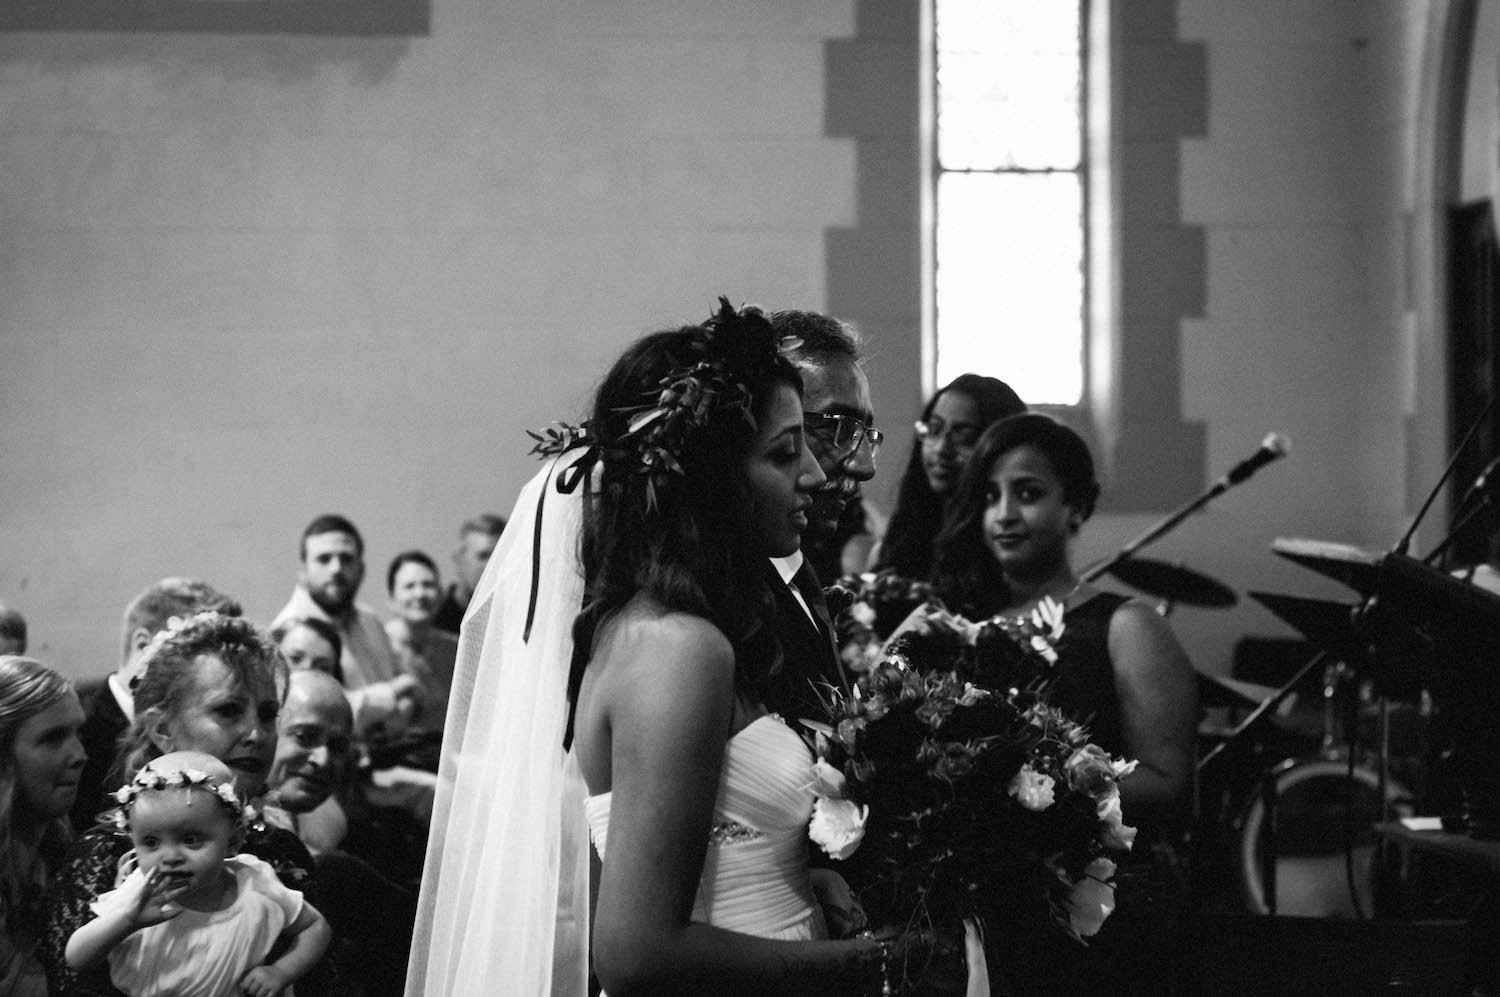 The bride arriving with her Father at the end of the aisle in St Matthew's Church